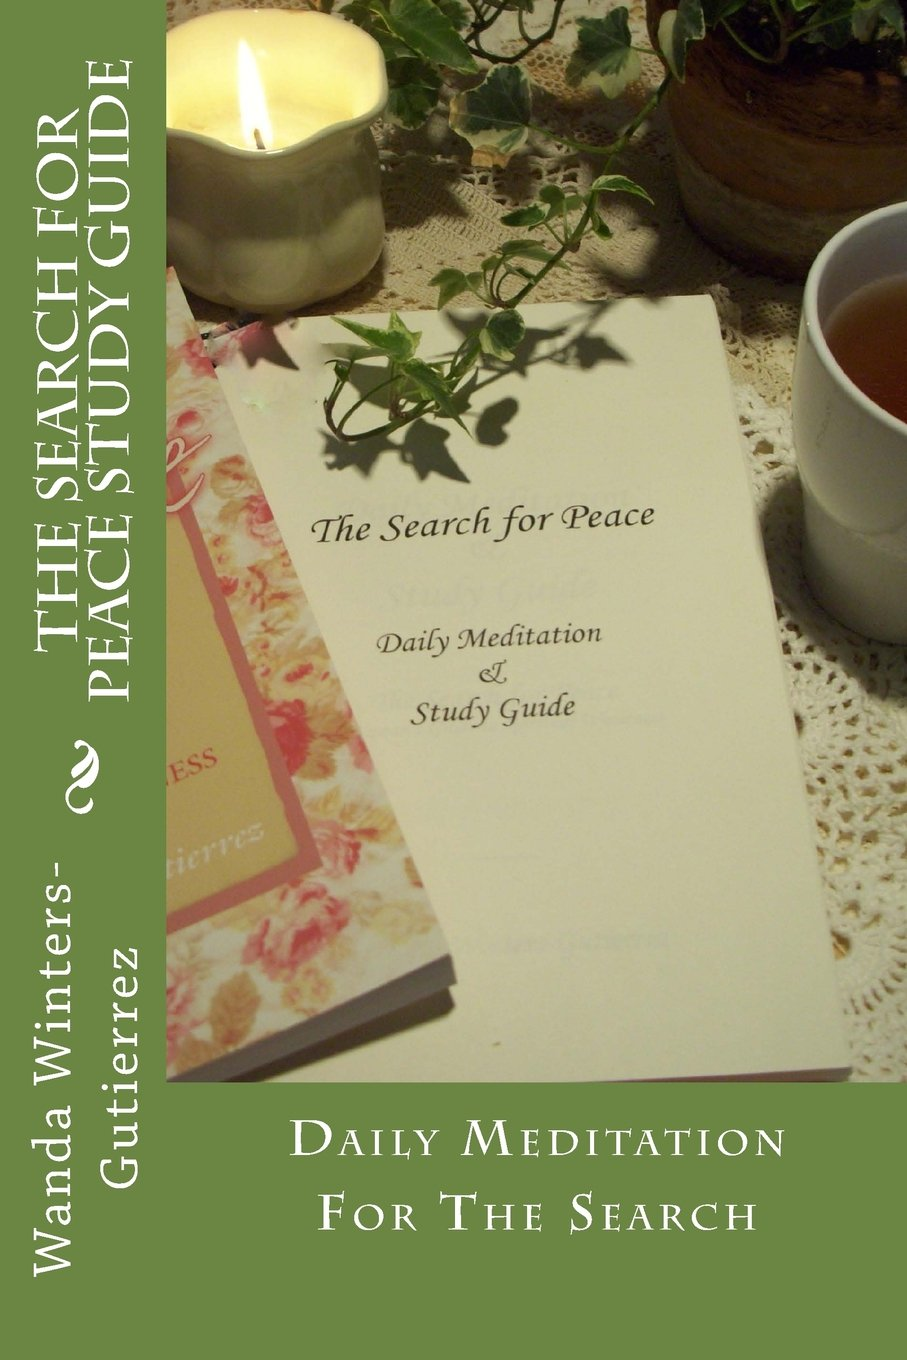 The Search for Peace Study Guide ebook